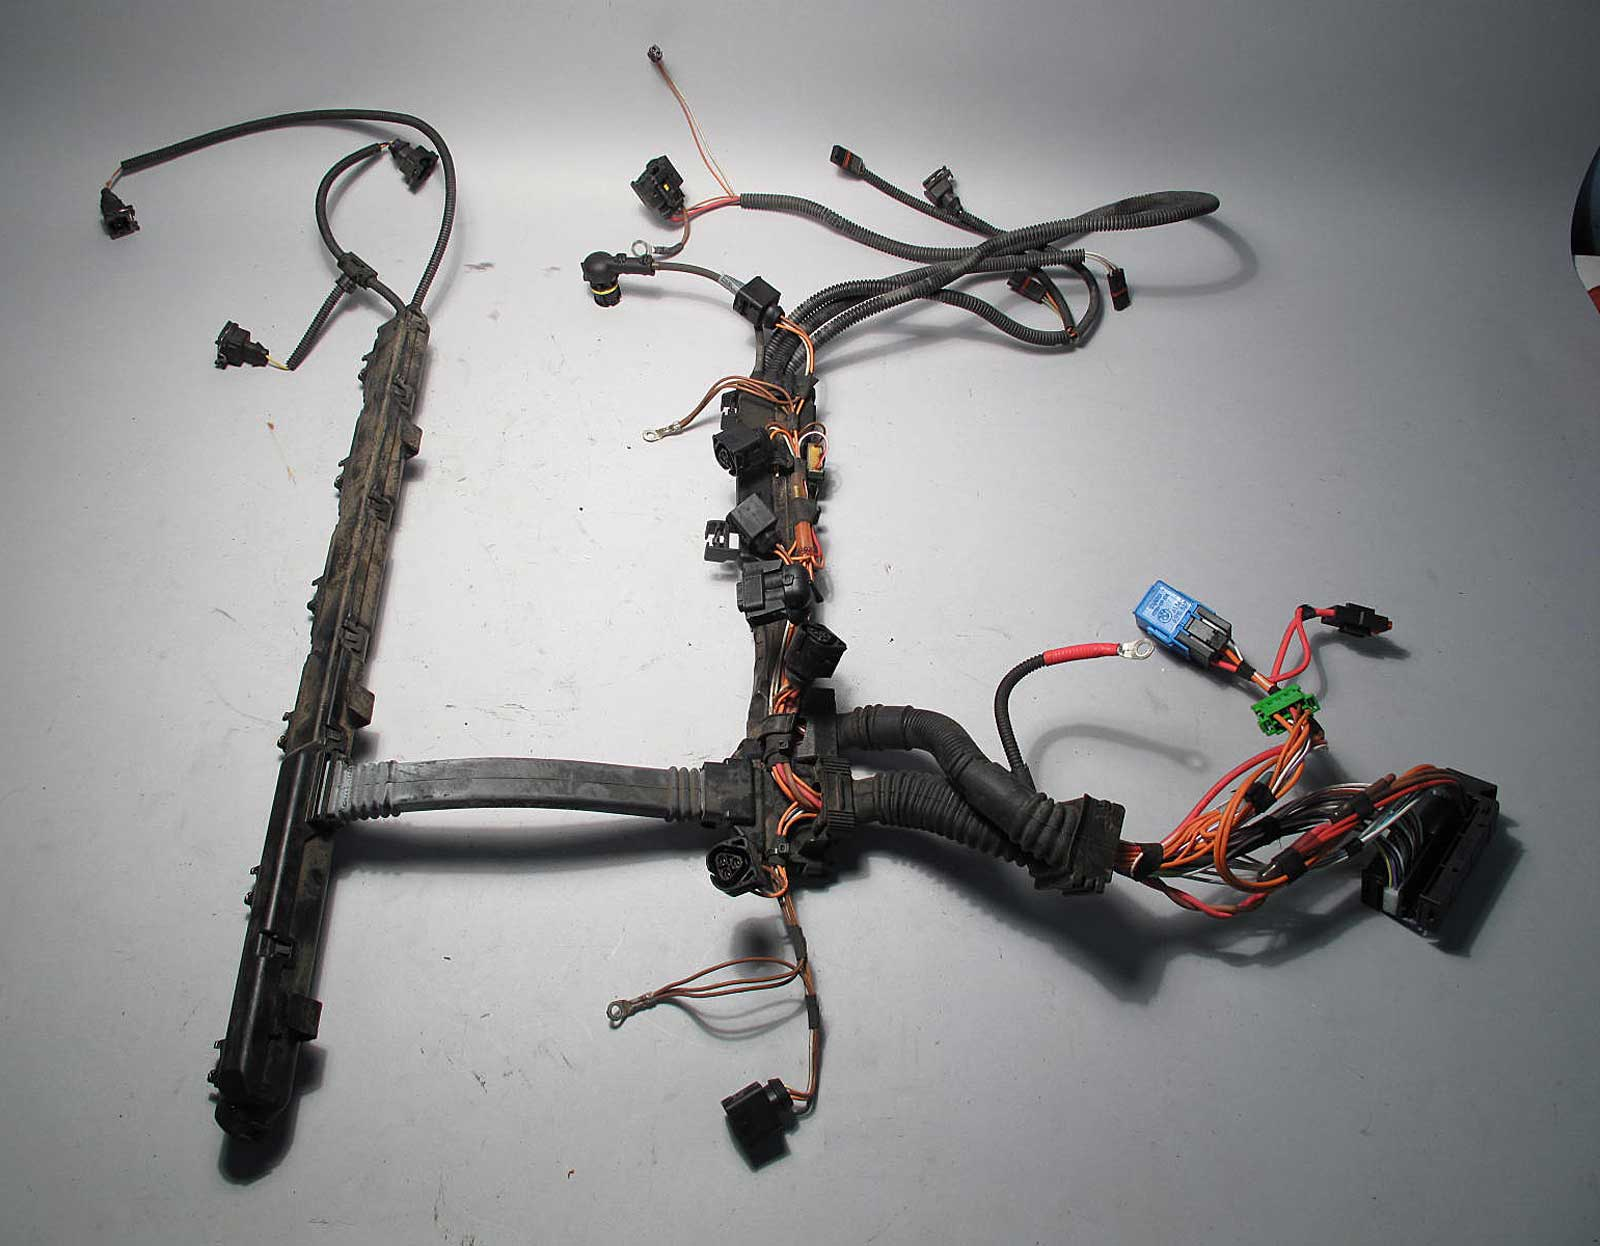 inv_006119 bmw n51 n52 n52n 6 cyl engine ignition coil wiring harness 2007 ignition coil wiring harness at bayanpartner.co